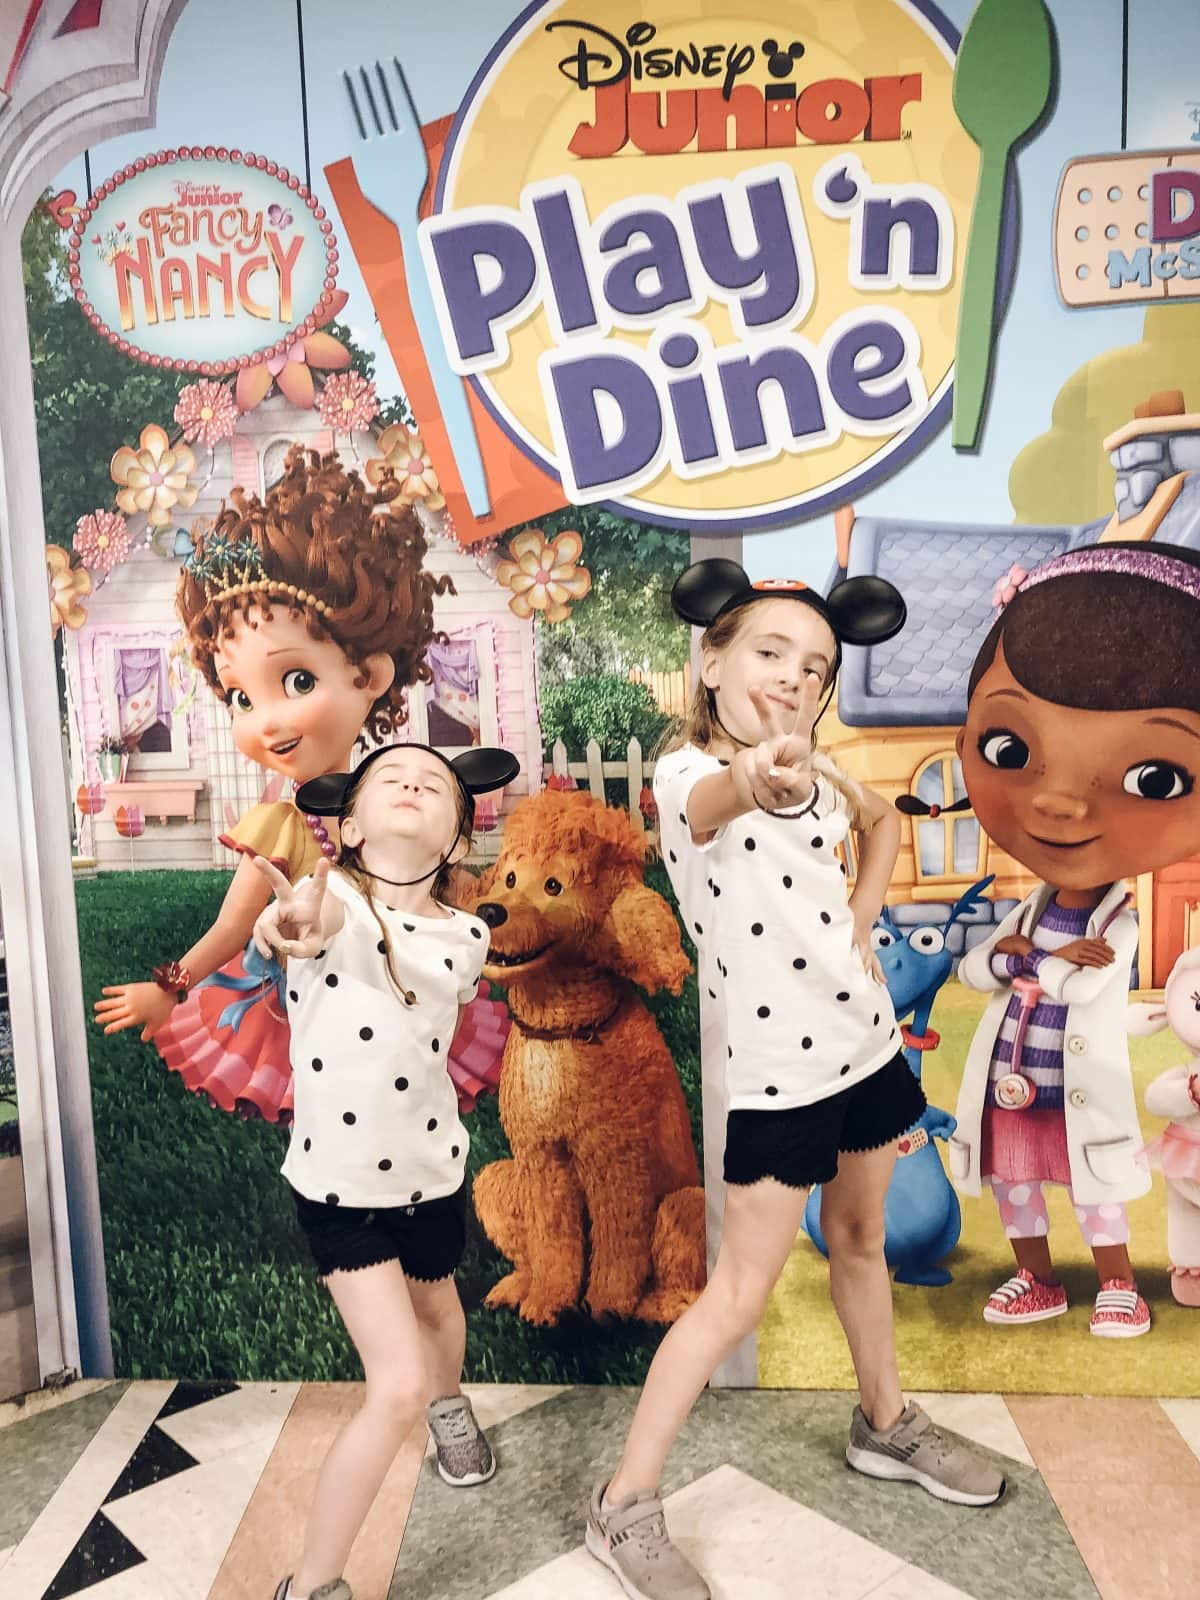 Houston lifestyle blogger Meg O. on the Go shares her favorite Disney World for kids experiences for preschoolers and up - Disney Junior Play 'n Dine character breakfast at Hollywood & Vine in Hollywood Studios